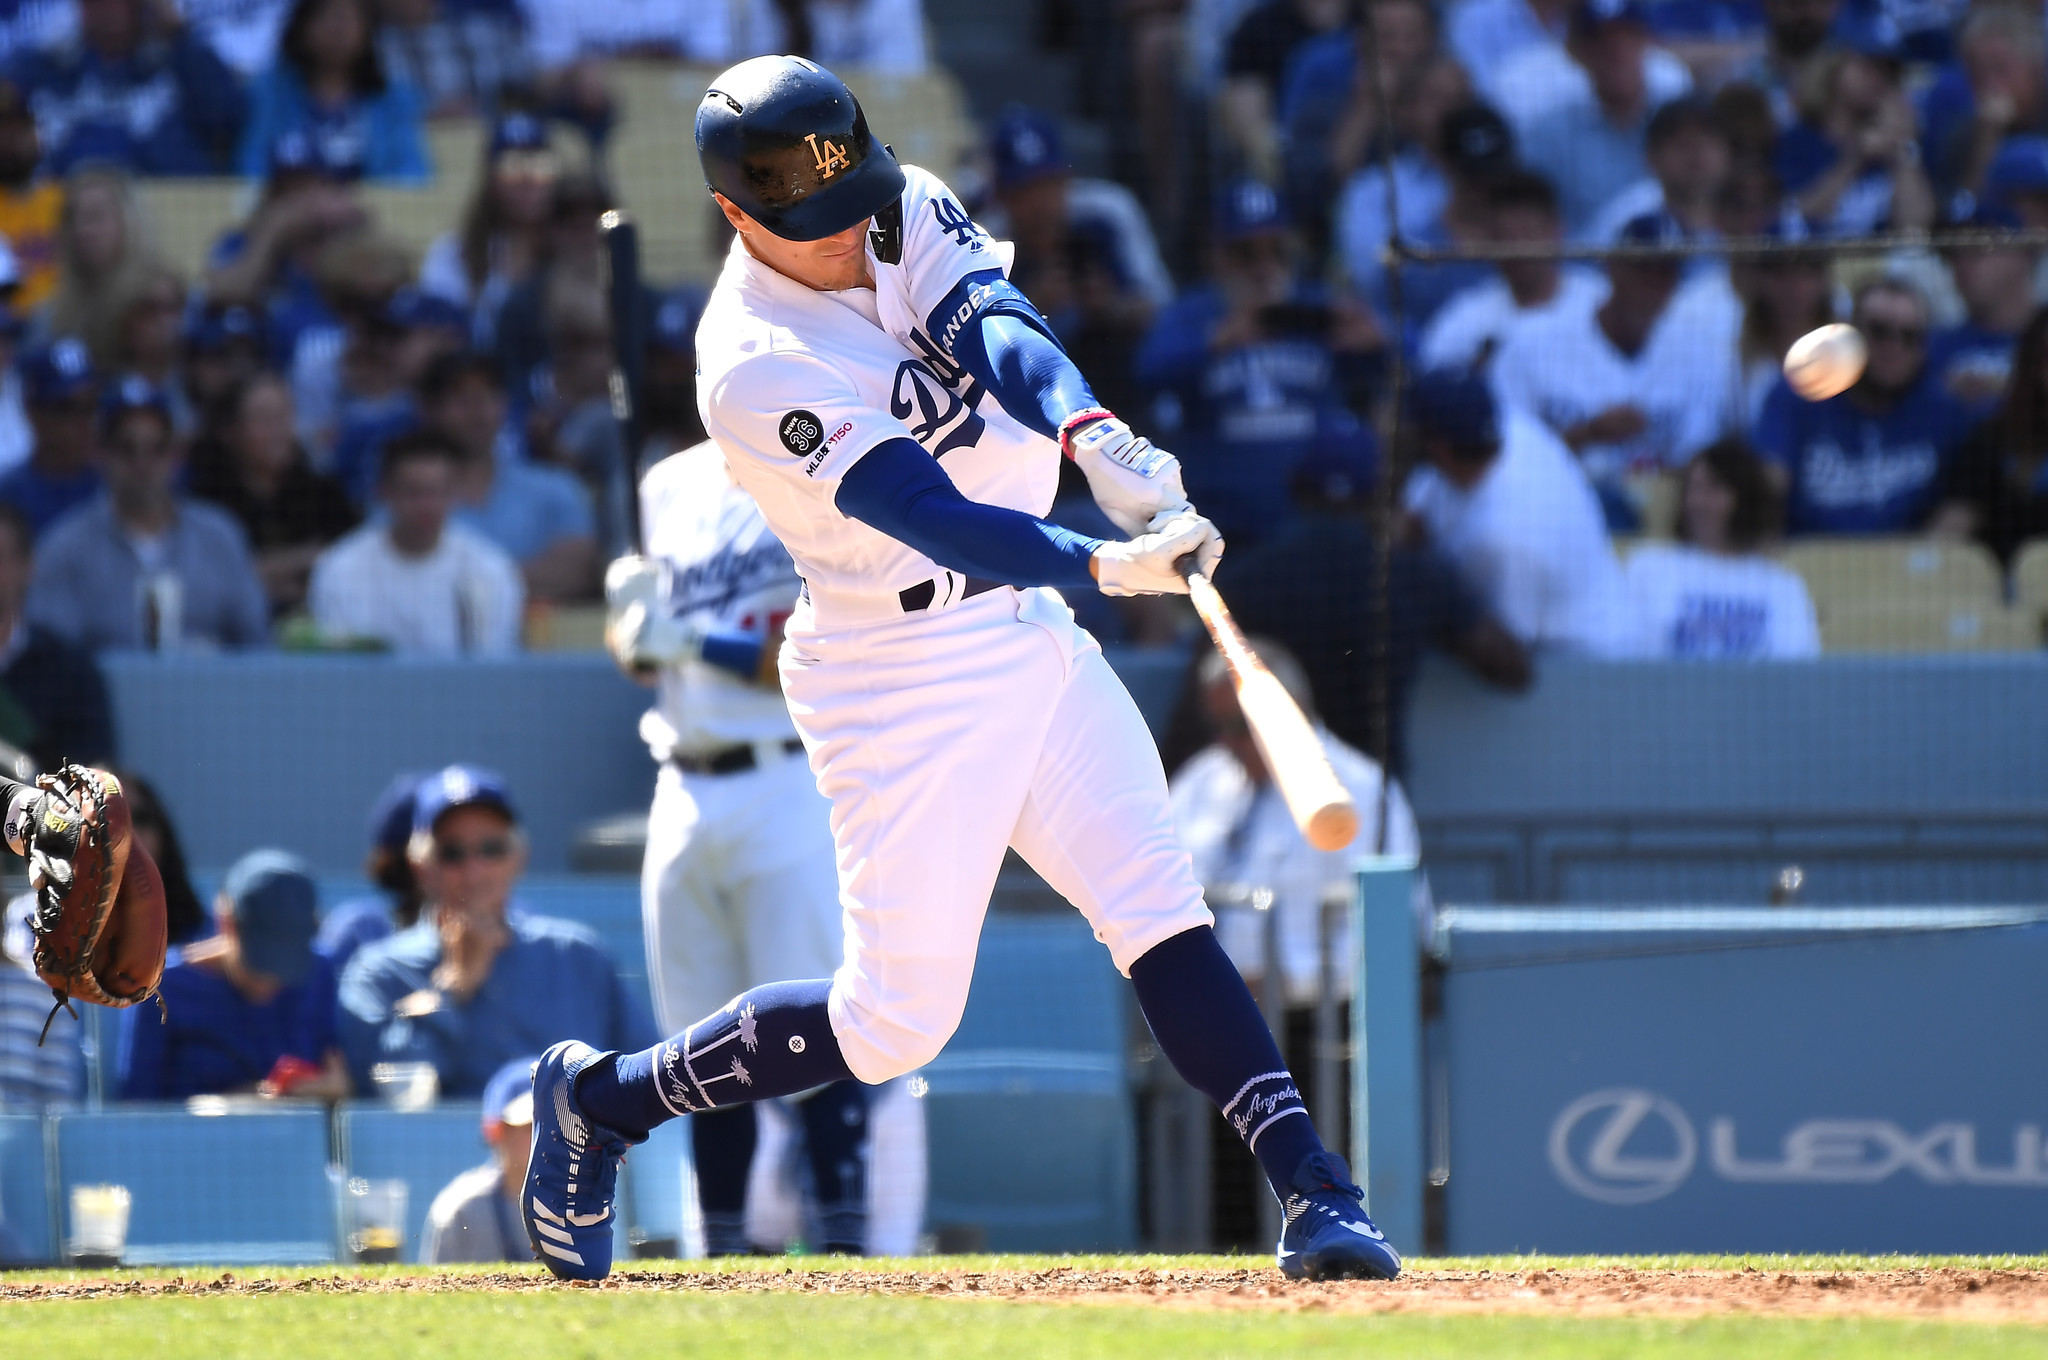 LOS ANGELES, CALIFORNIA MARCH 25, 2019-Dodgers Kiki Hernandez hits his second home run of the game a